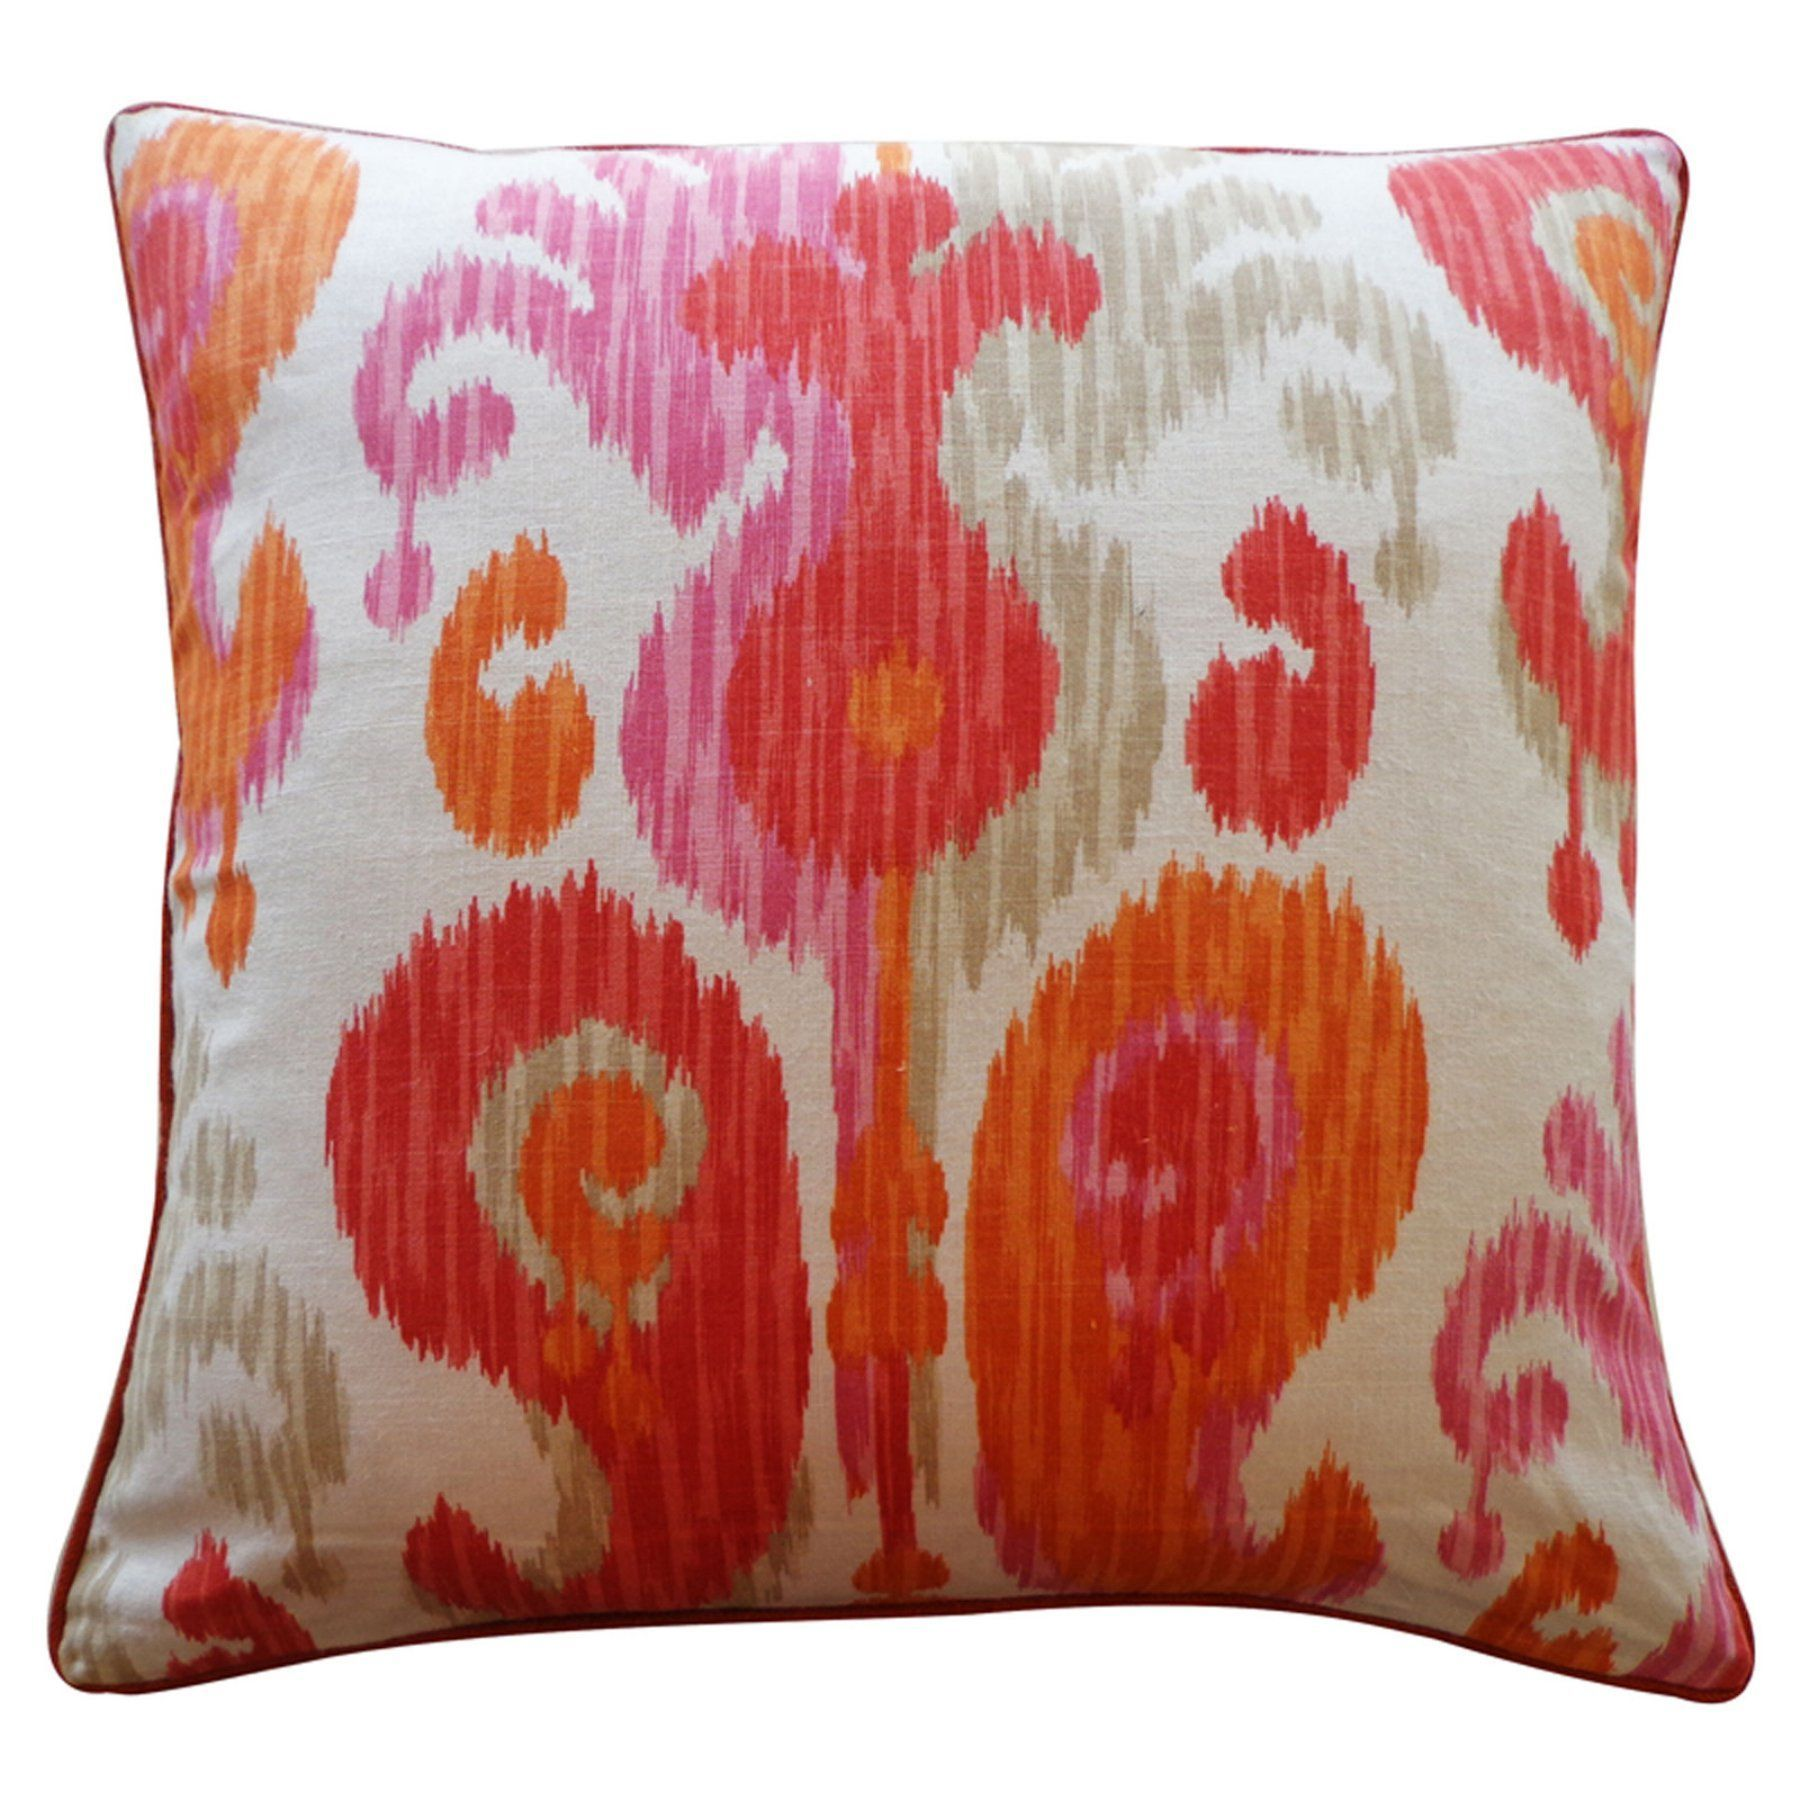 Jiti Camino 18 x 18 Pillow - 1818/CAM-BRY | Pillows and Products